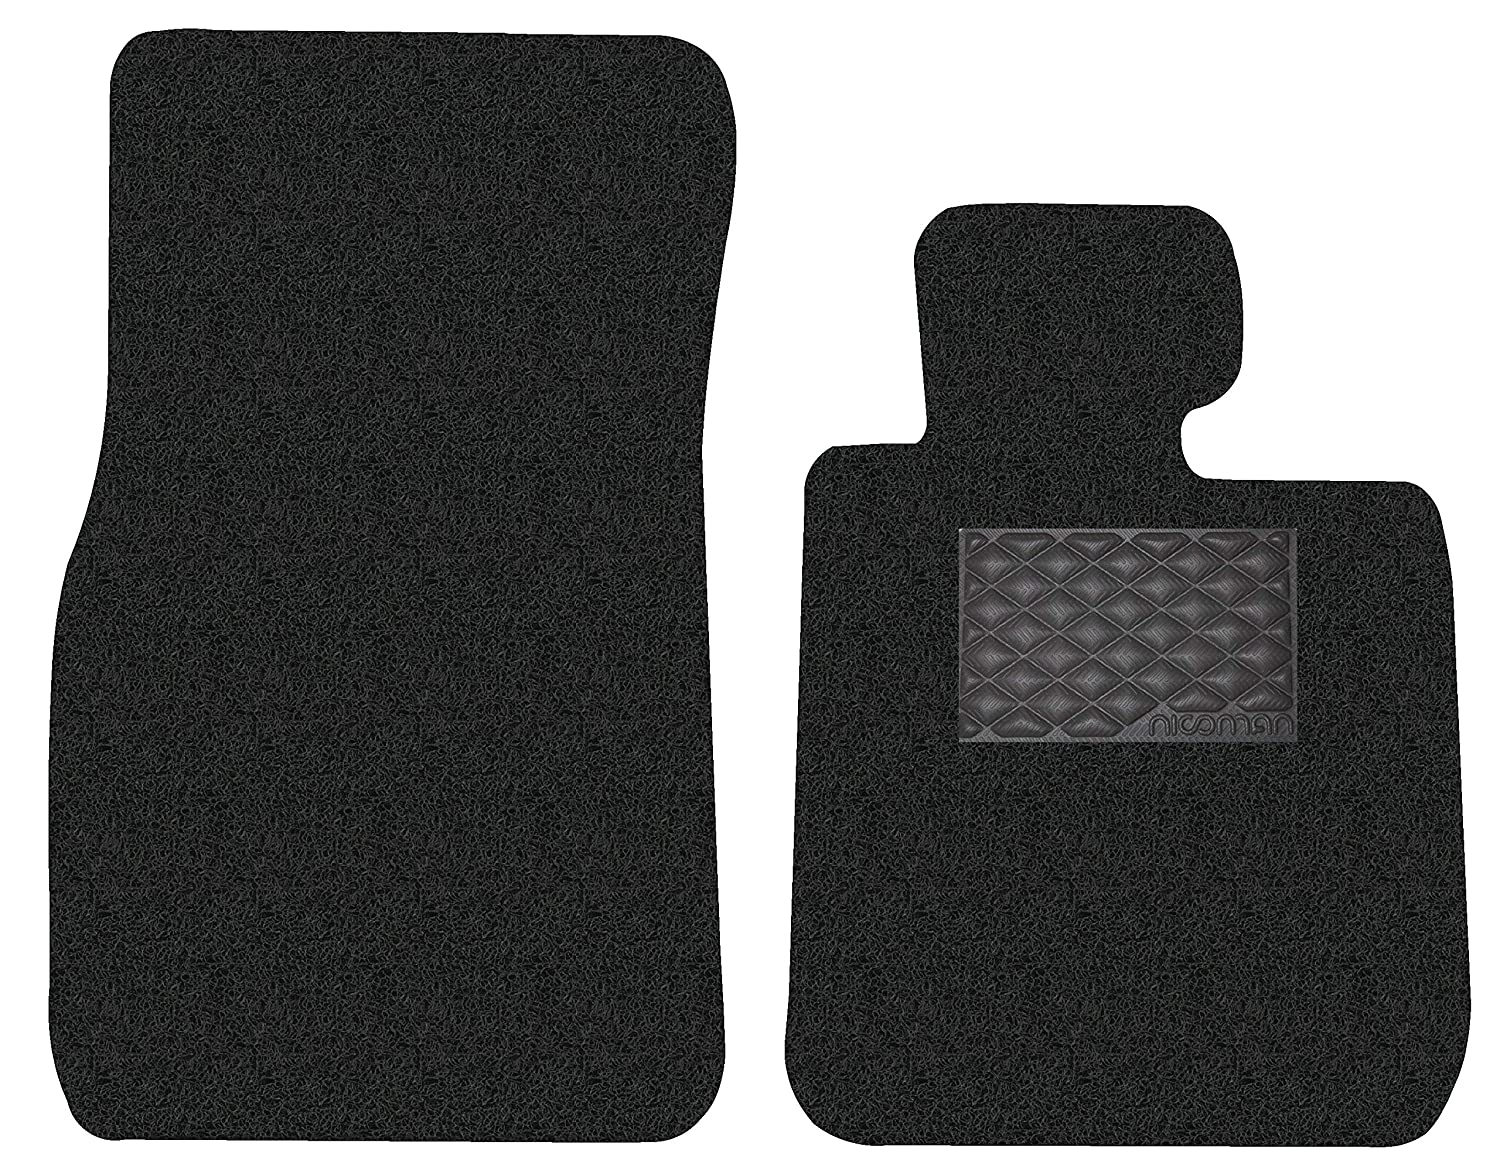 Nicoman 8-MM-C1548-BMW-1-Sr-E81//E87-Hatch-BK-DR Spaghetti All-Weather Fully Tailored Car mats Fit【1-Series Hatchback 3/&5 Doors E81//E87 Year 2004-2012】 Driver Side 1-Piece,Black BMW 5Door